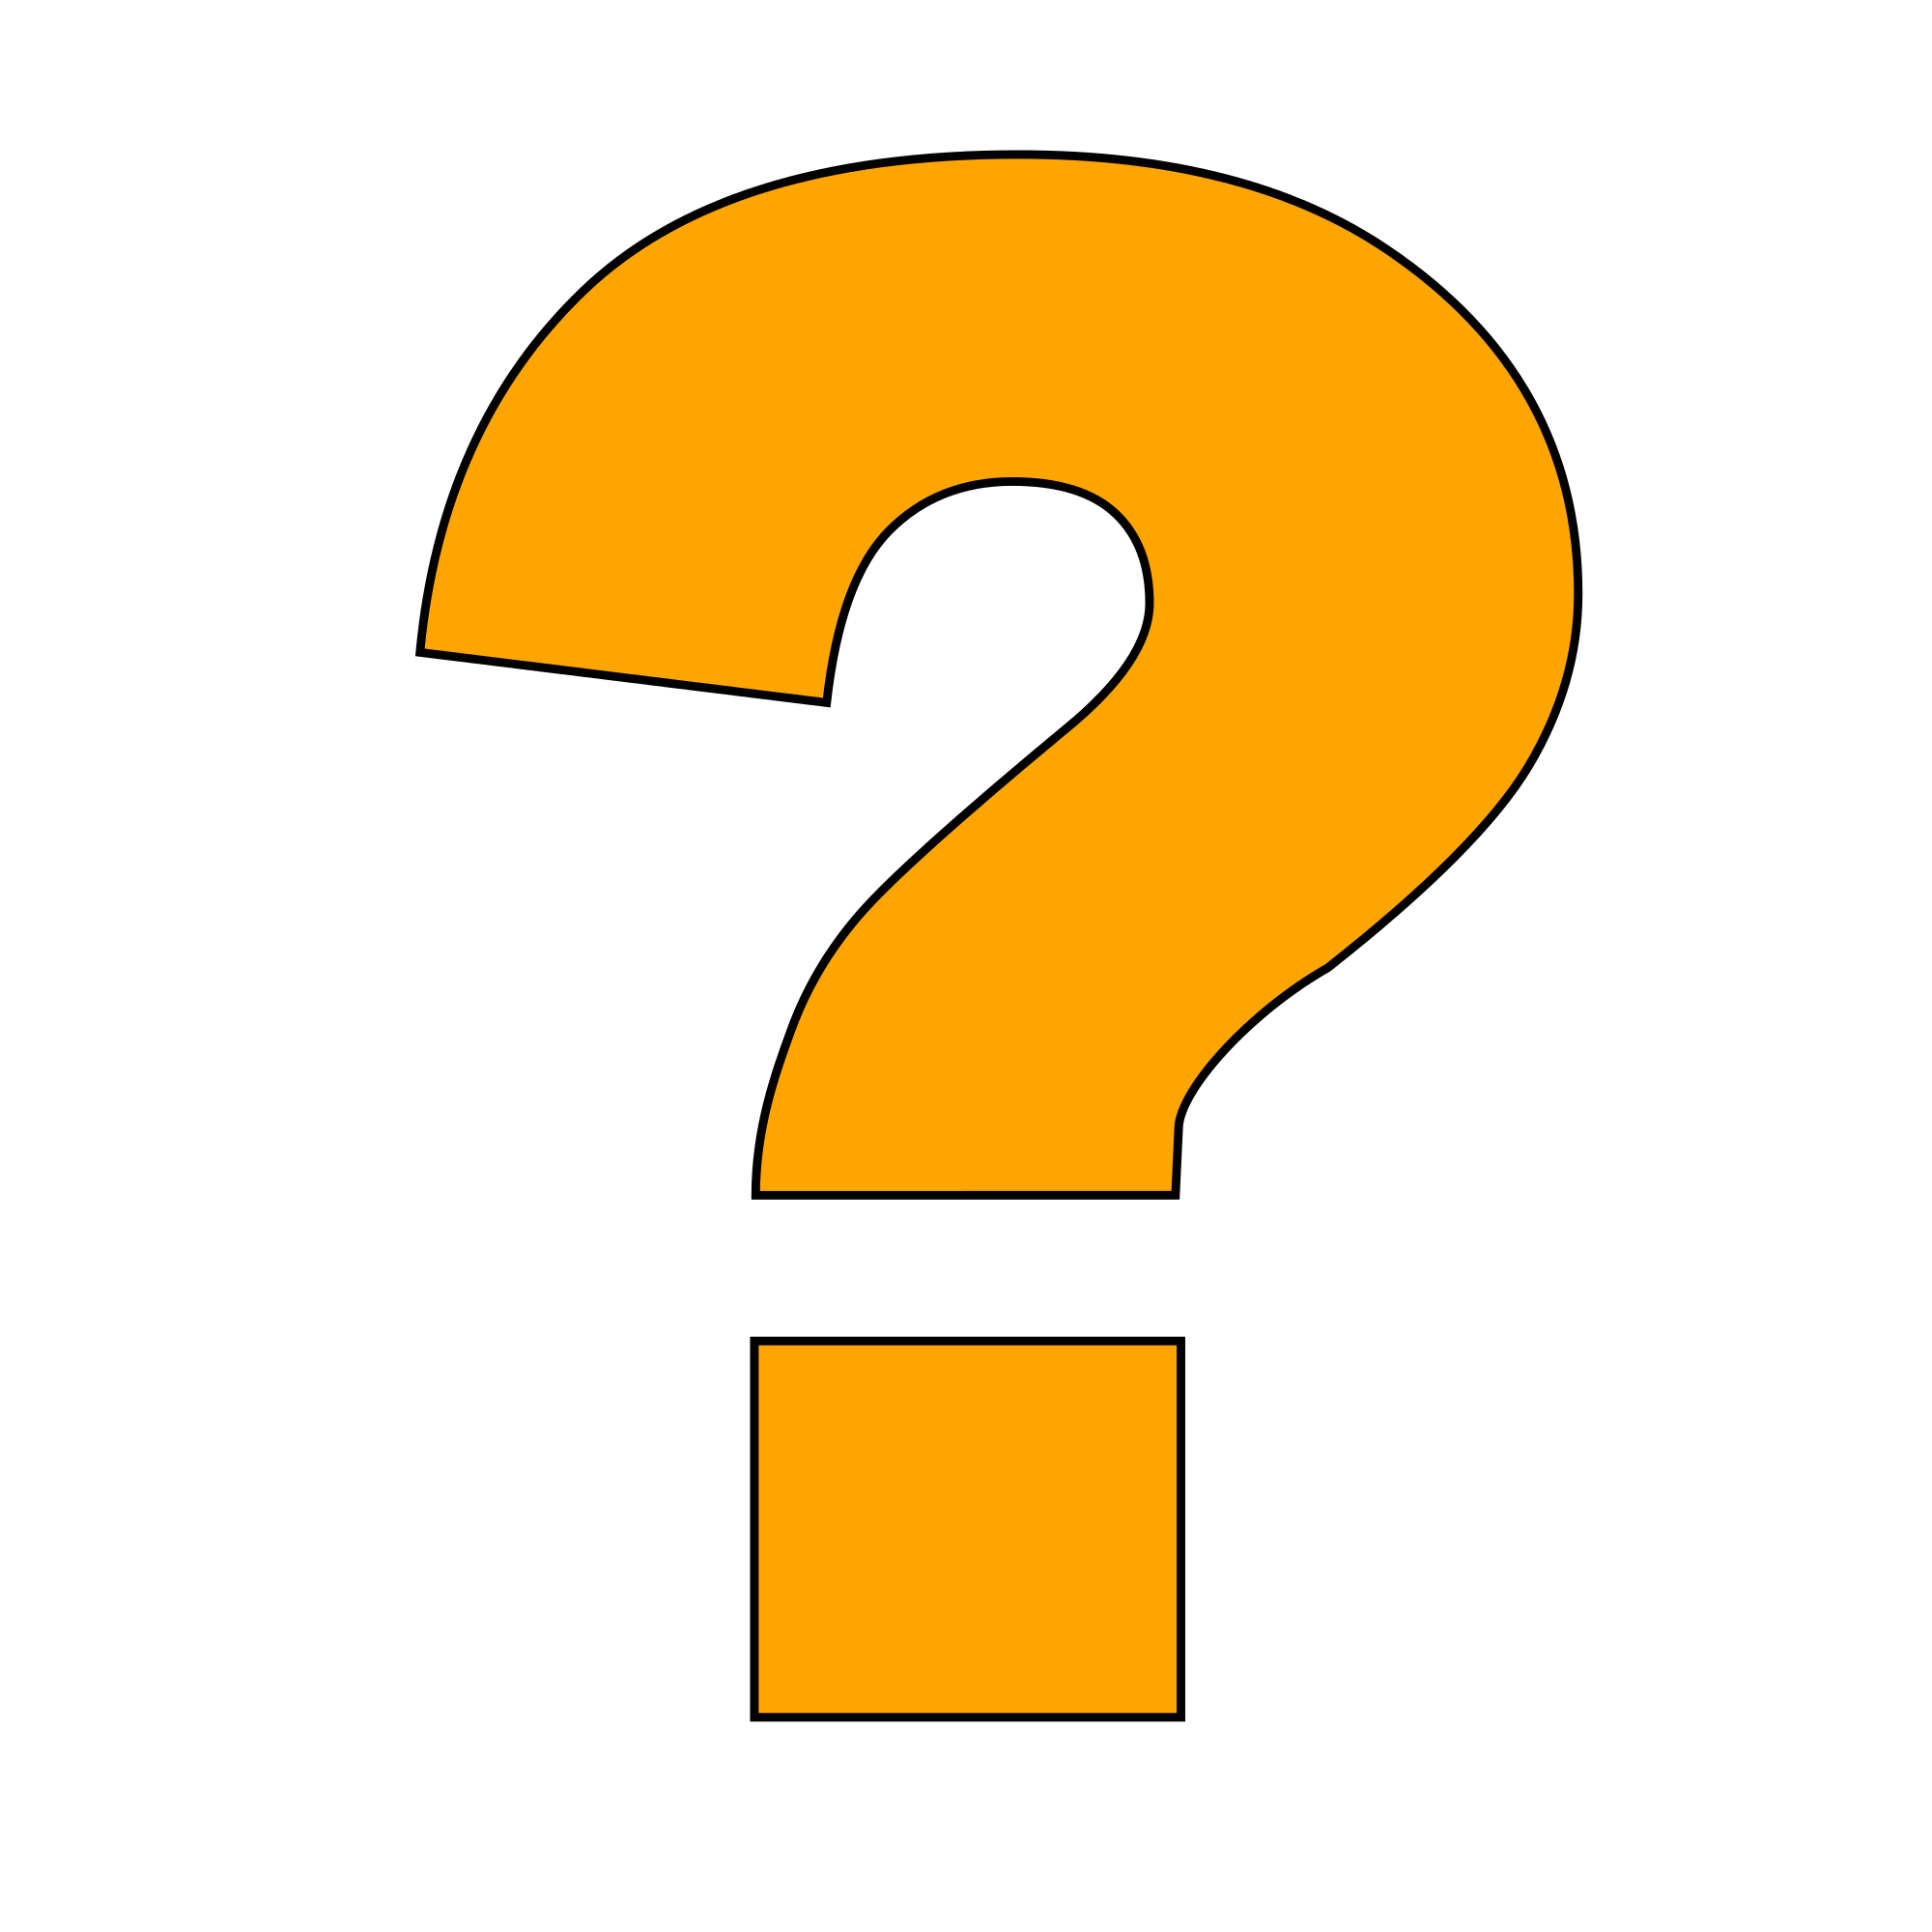 Mystery svg #2, Download drawings